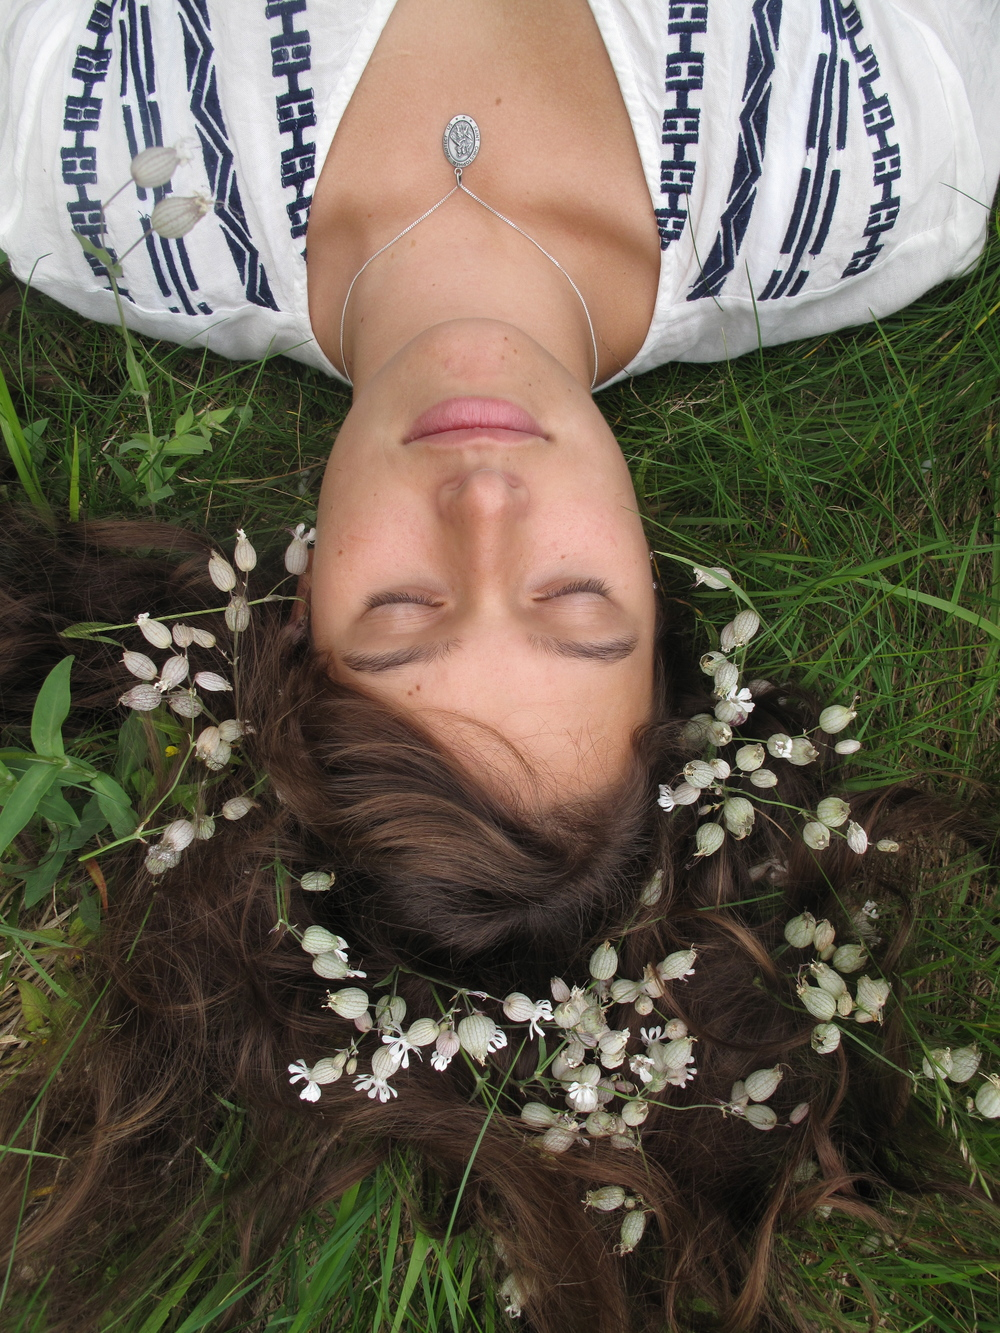 Lying in the grass with a halo of white flowers.